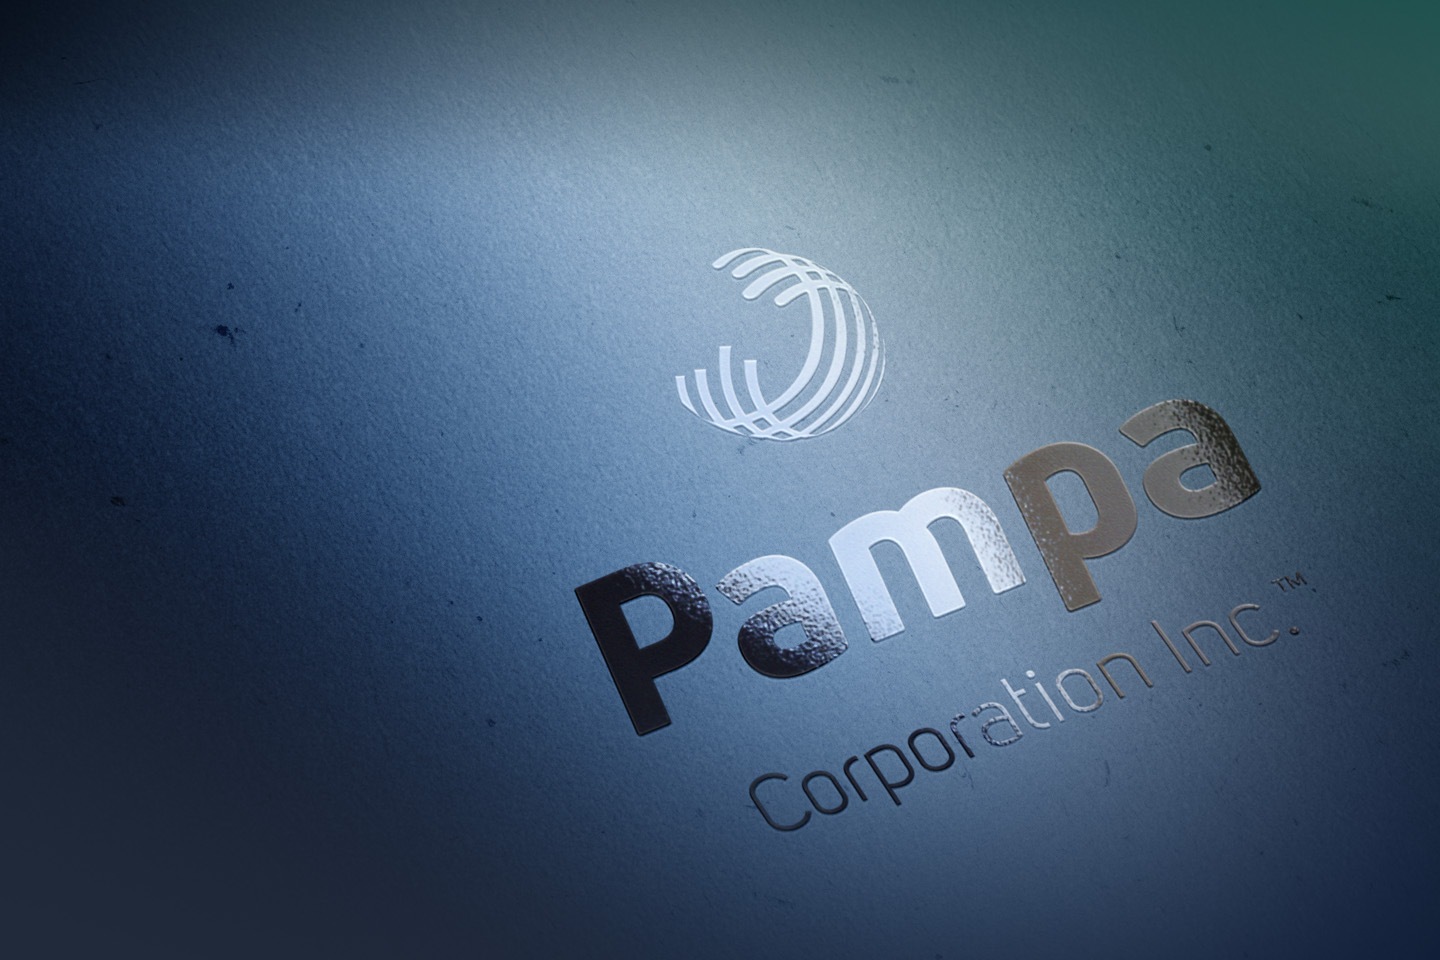 Pampa Corporation